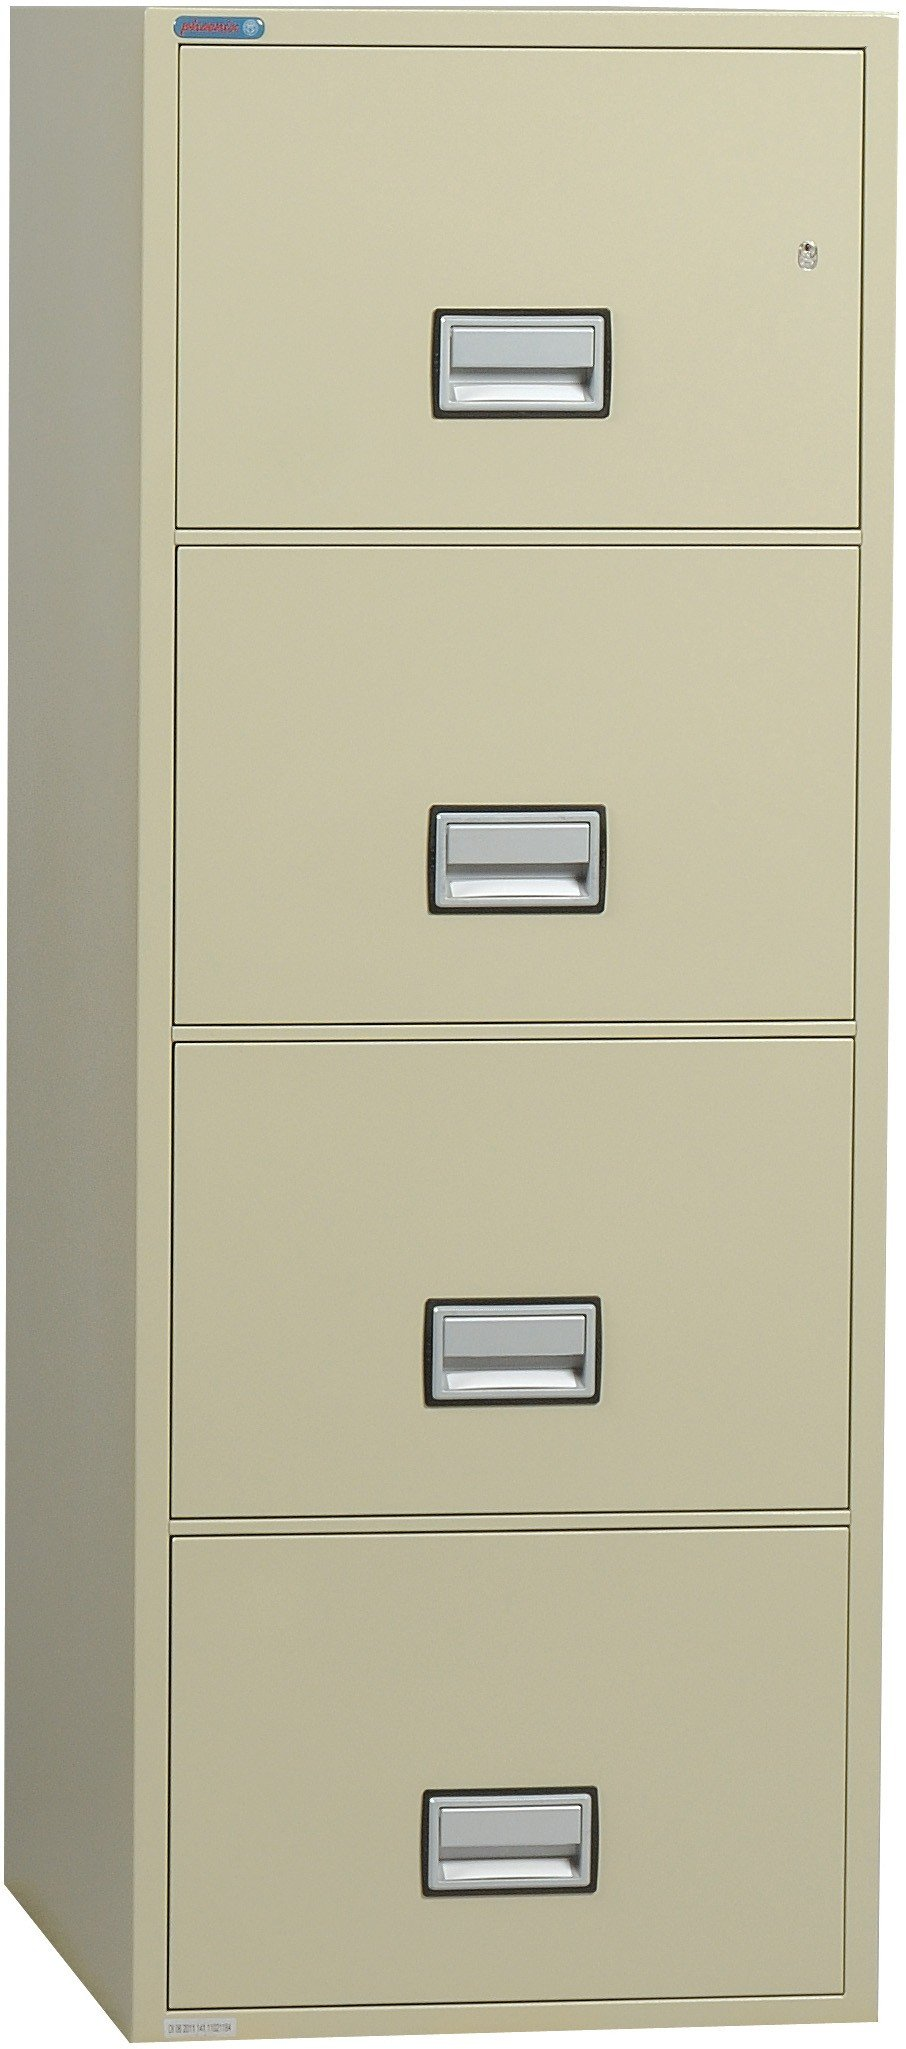 Phoenix Vertical 31 inch 4-Drawer Legal Fireproof File Cabinet